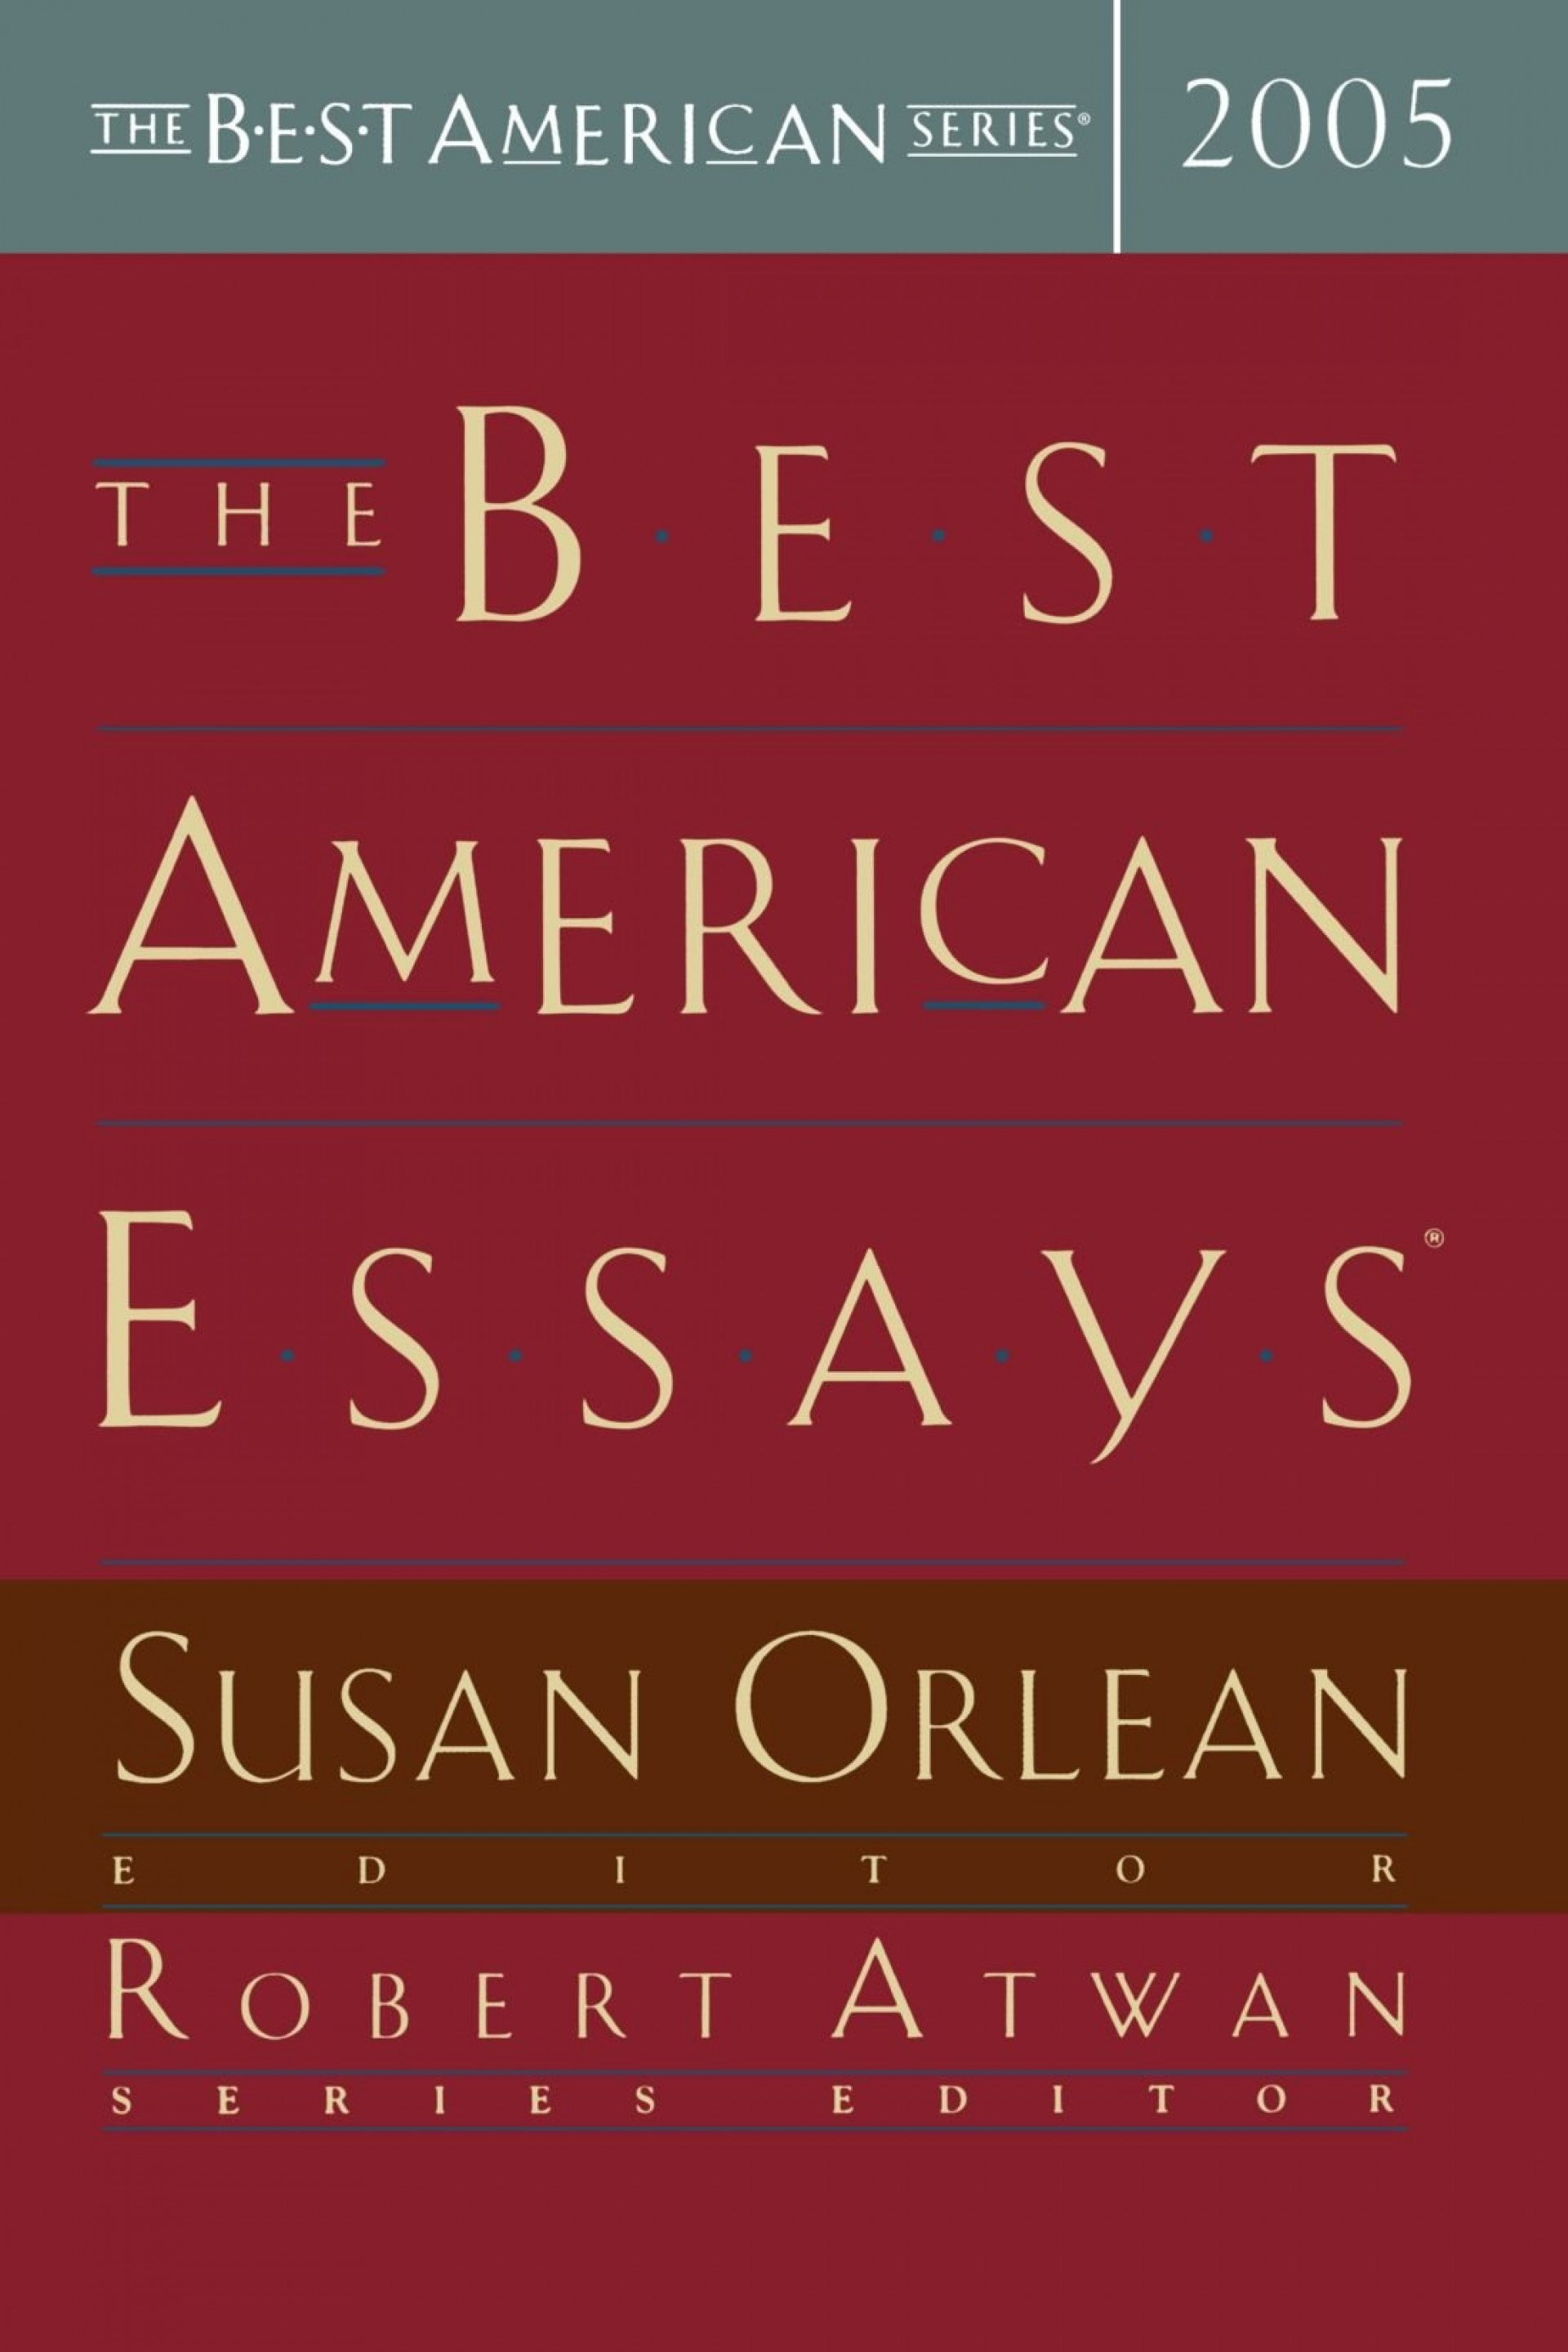 010 Essay Example Best American Essays Striking 2017 Pdf Submissions 2019 Of The Century Table Contents 1920